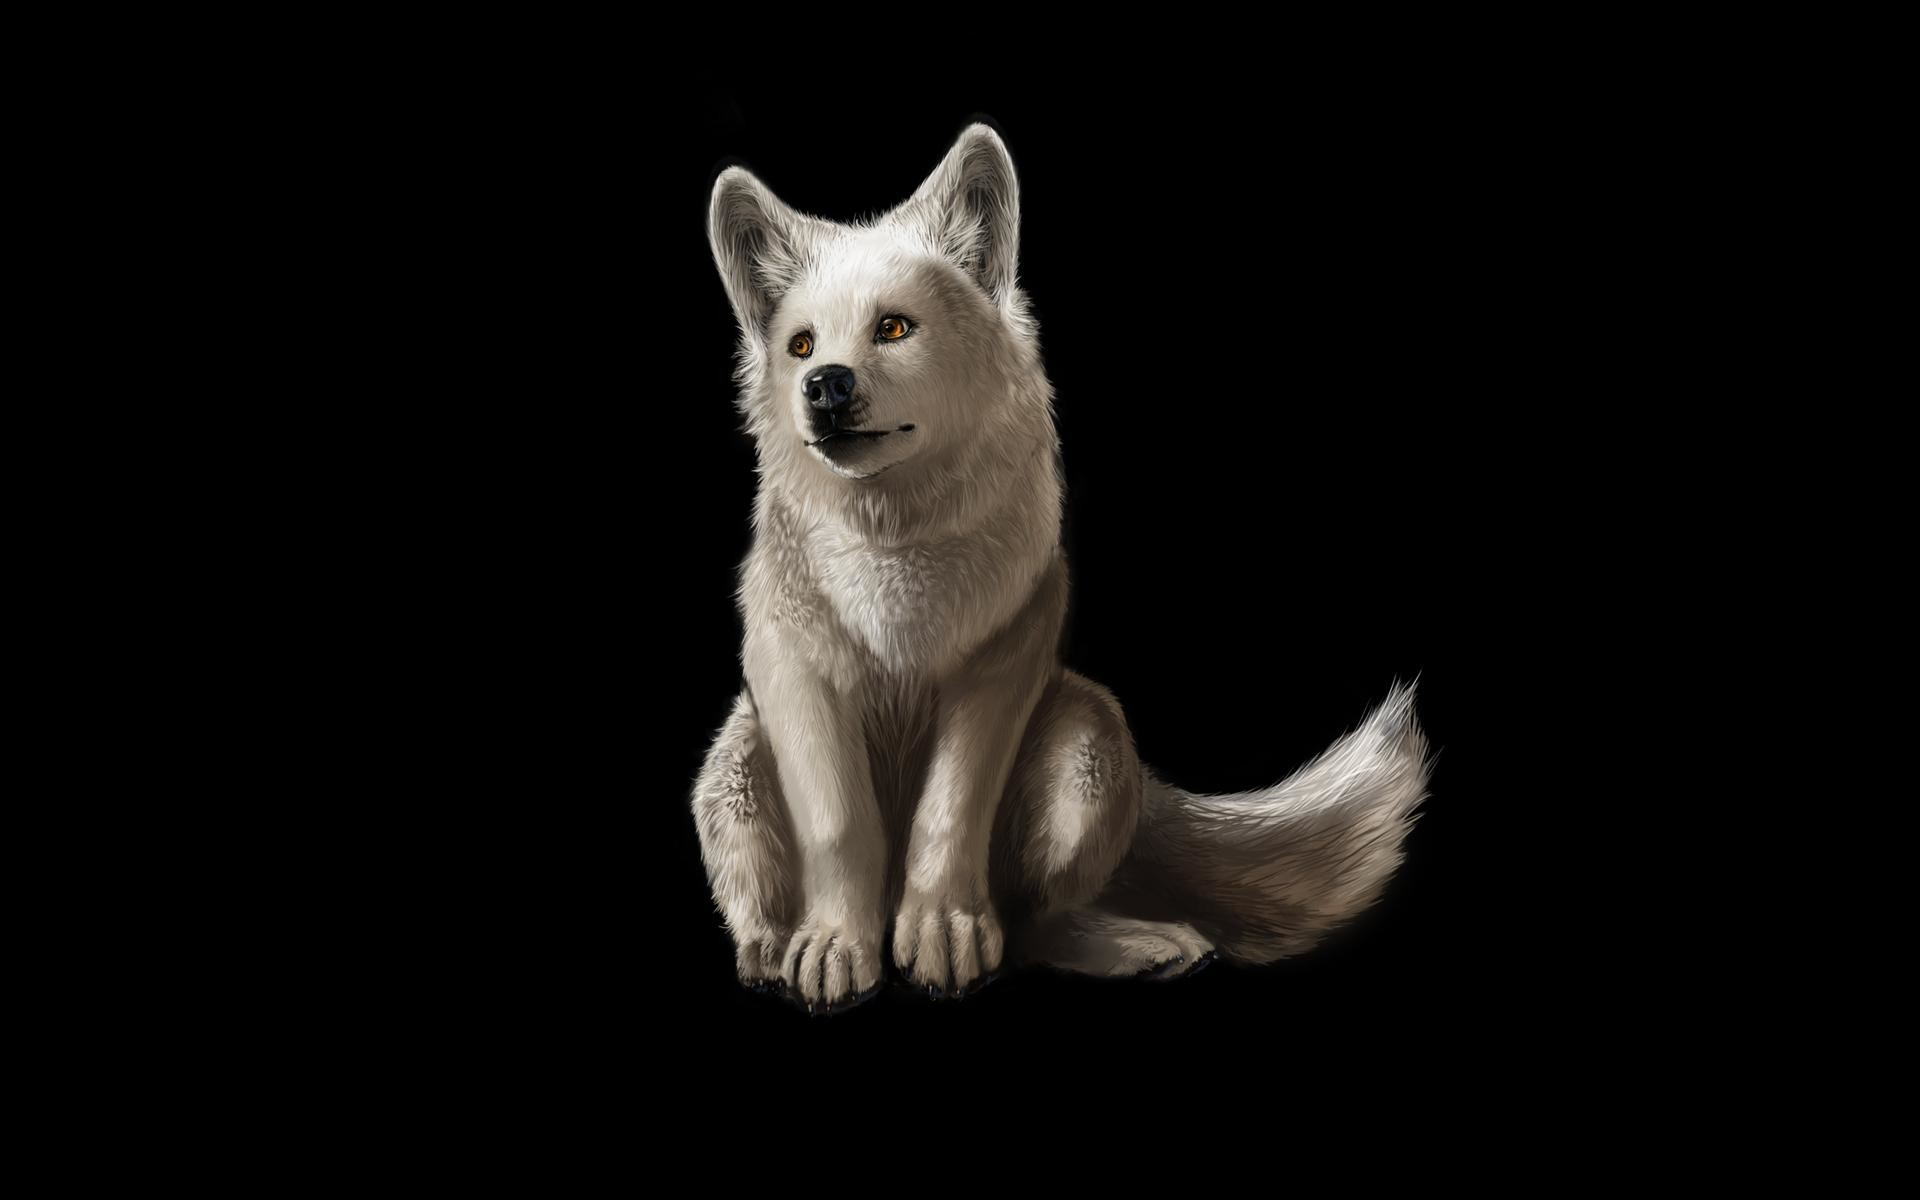 Wallpapers For > Cool White Wolf Backgrounds